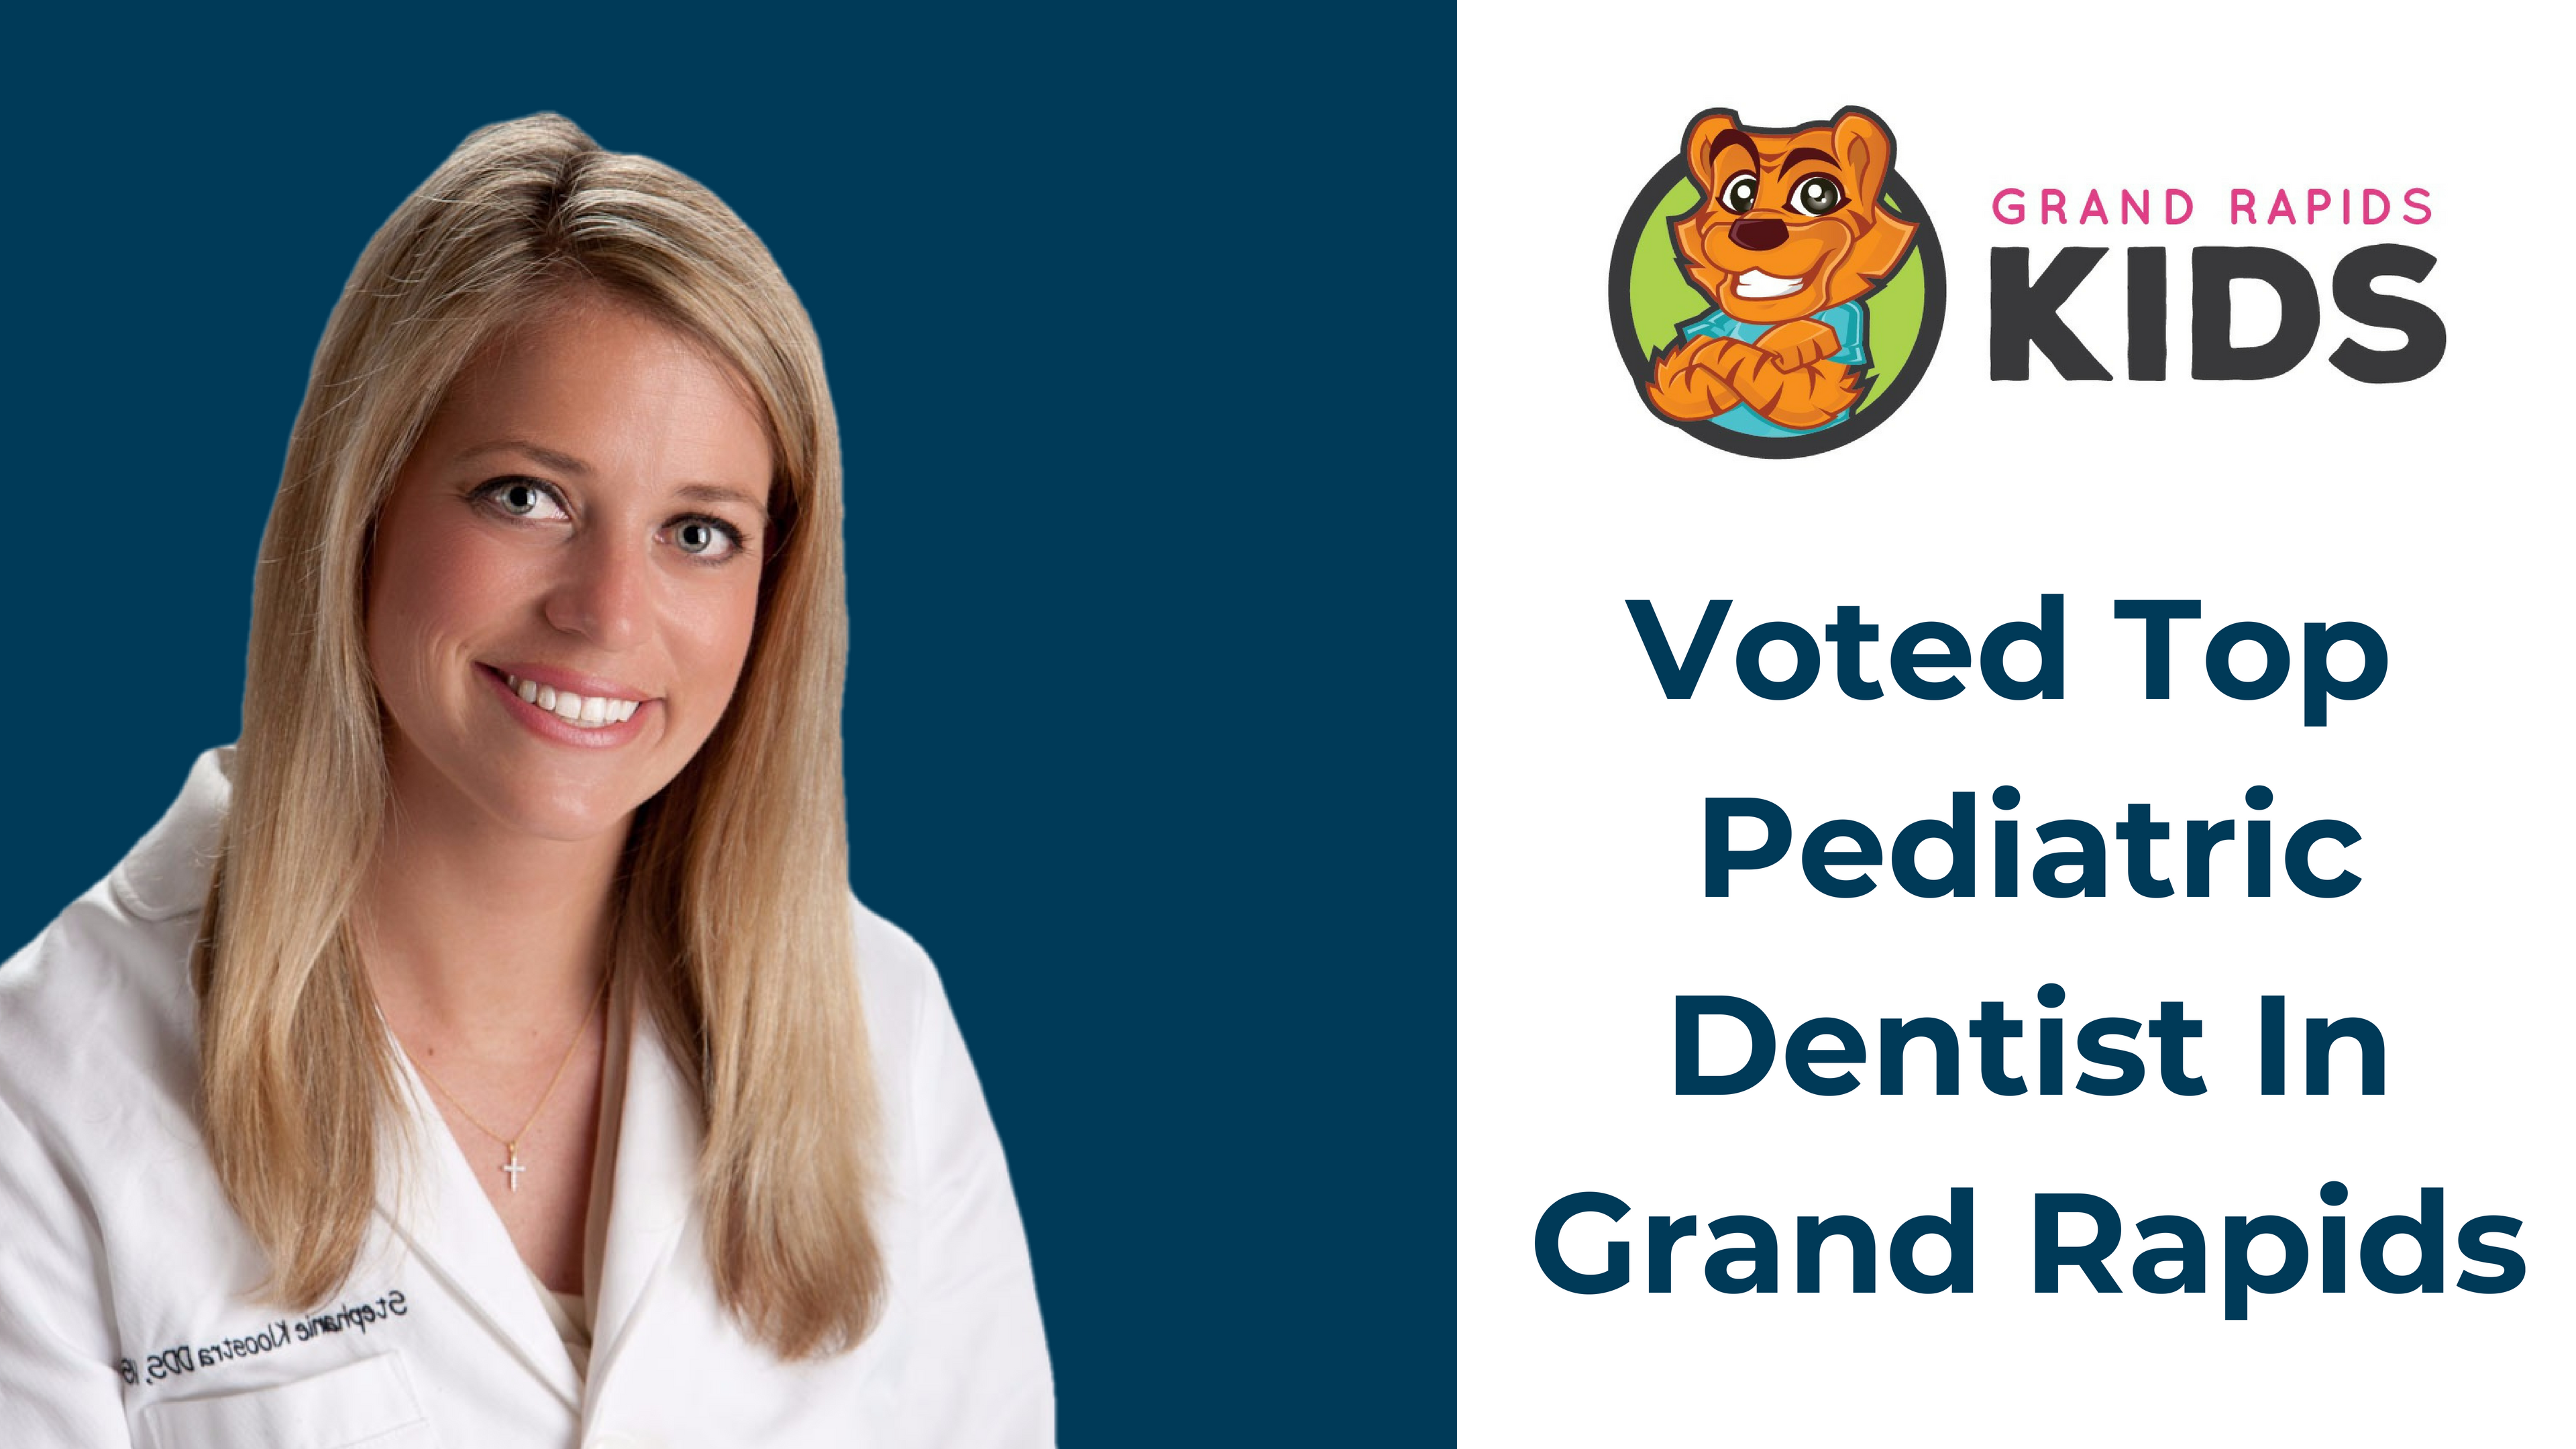 Pediatric Dentist Grand Rapids